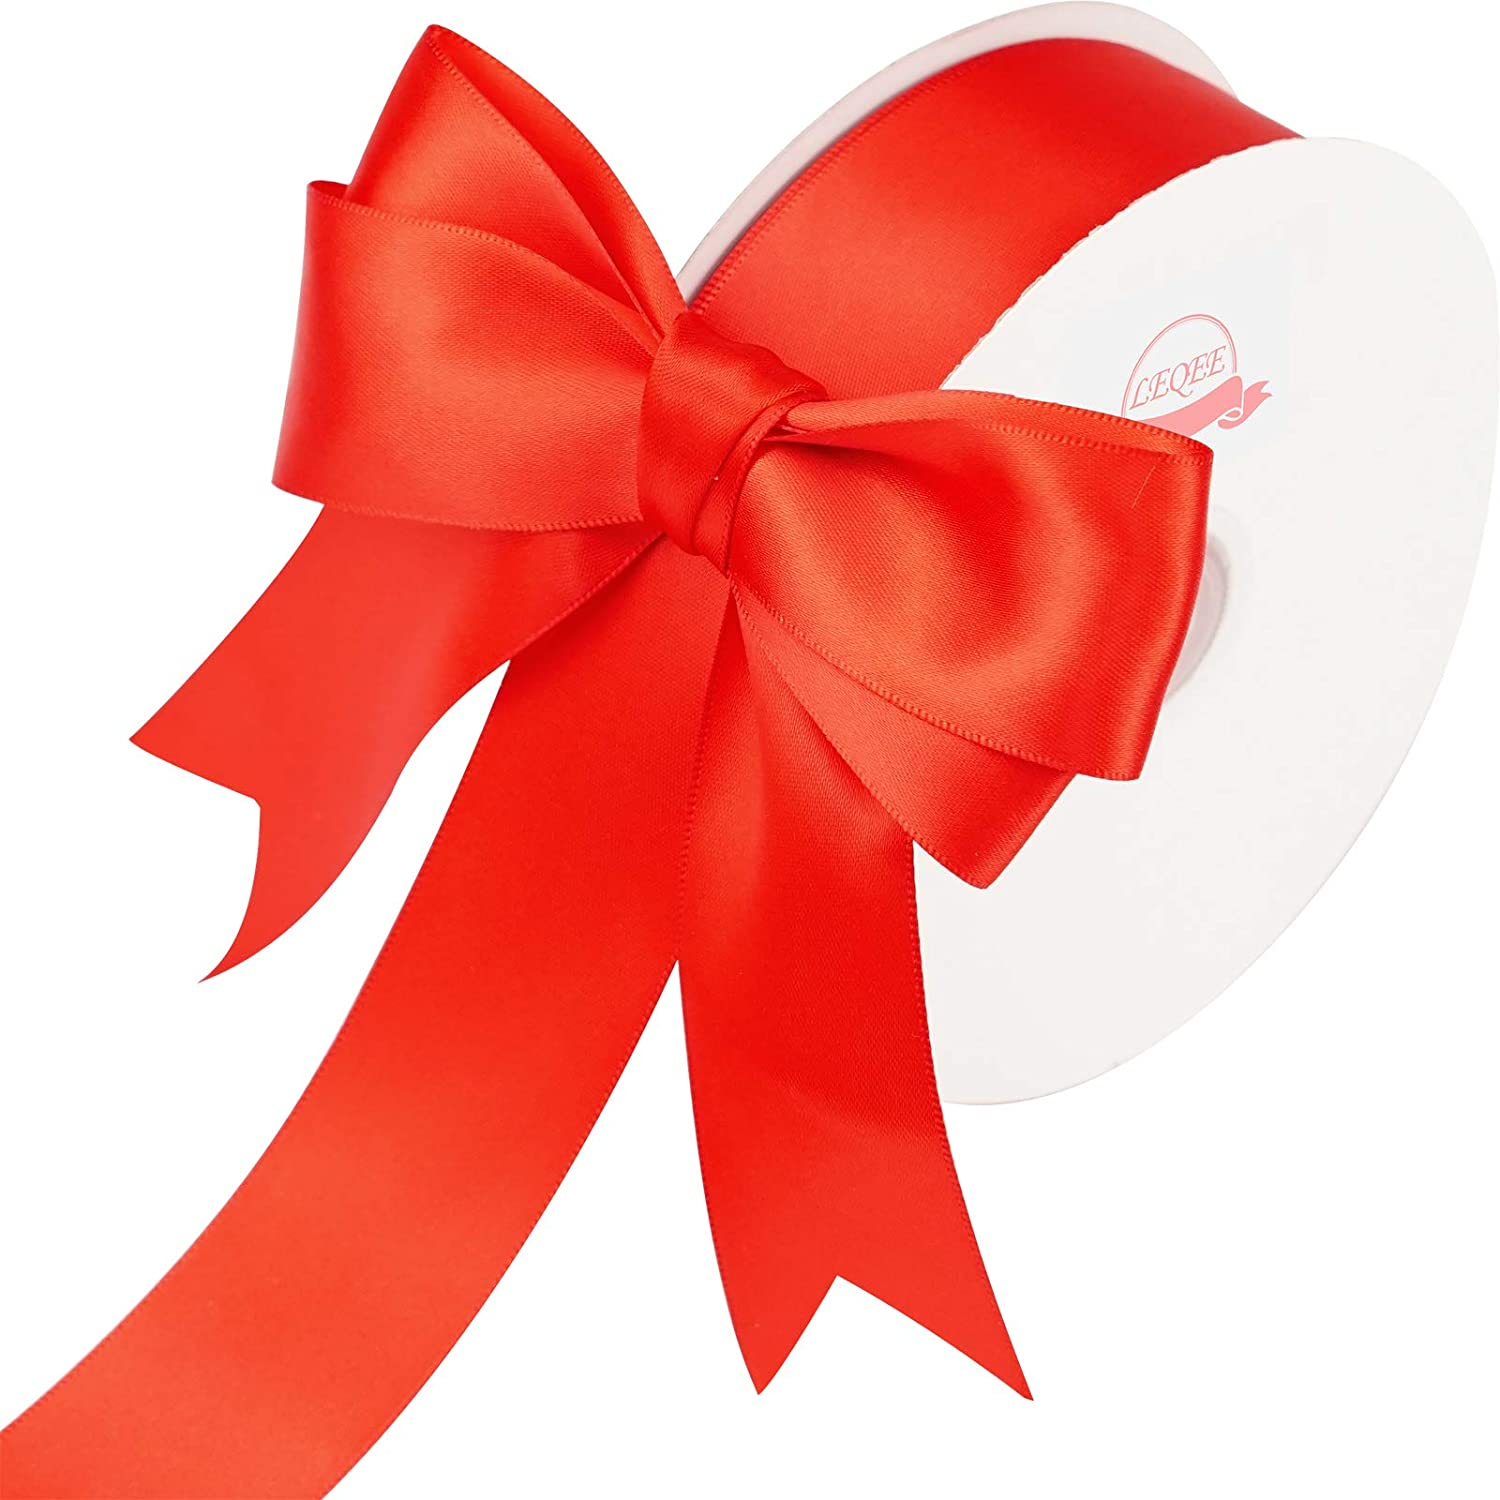 LEEQE Red Double Face Satin Ribbon 1-1/2